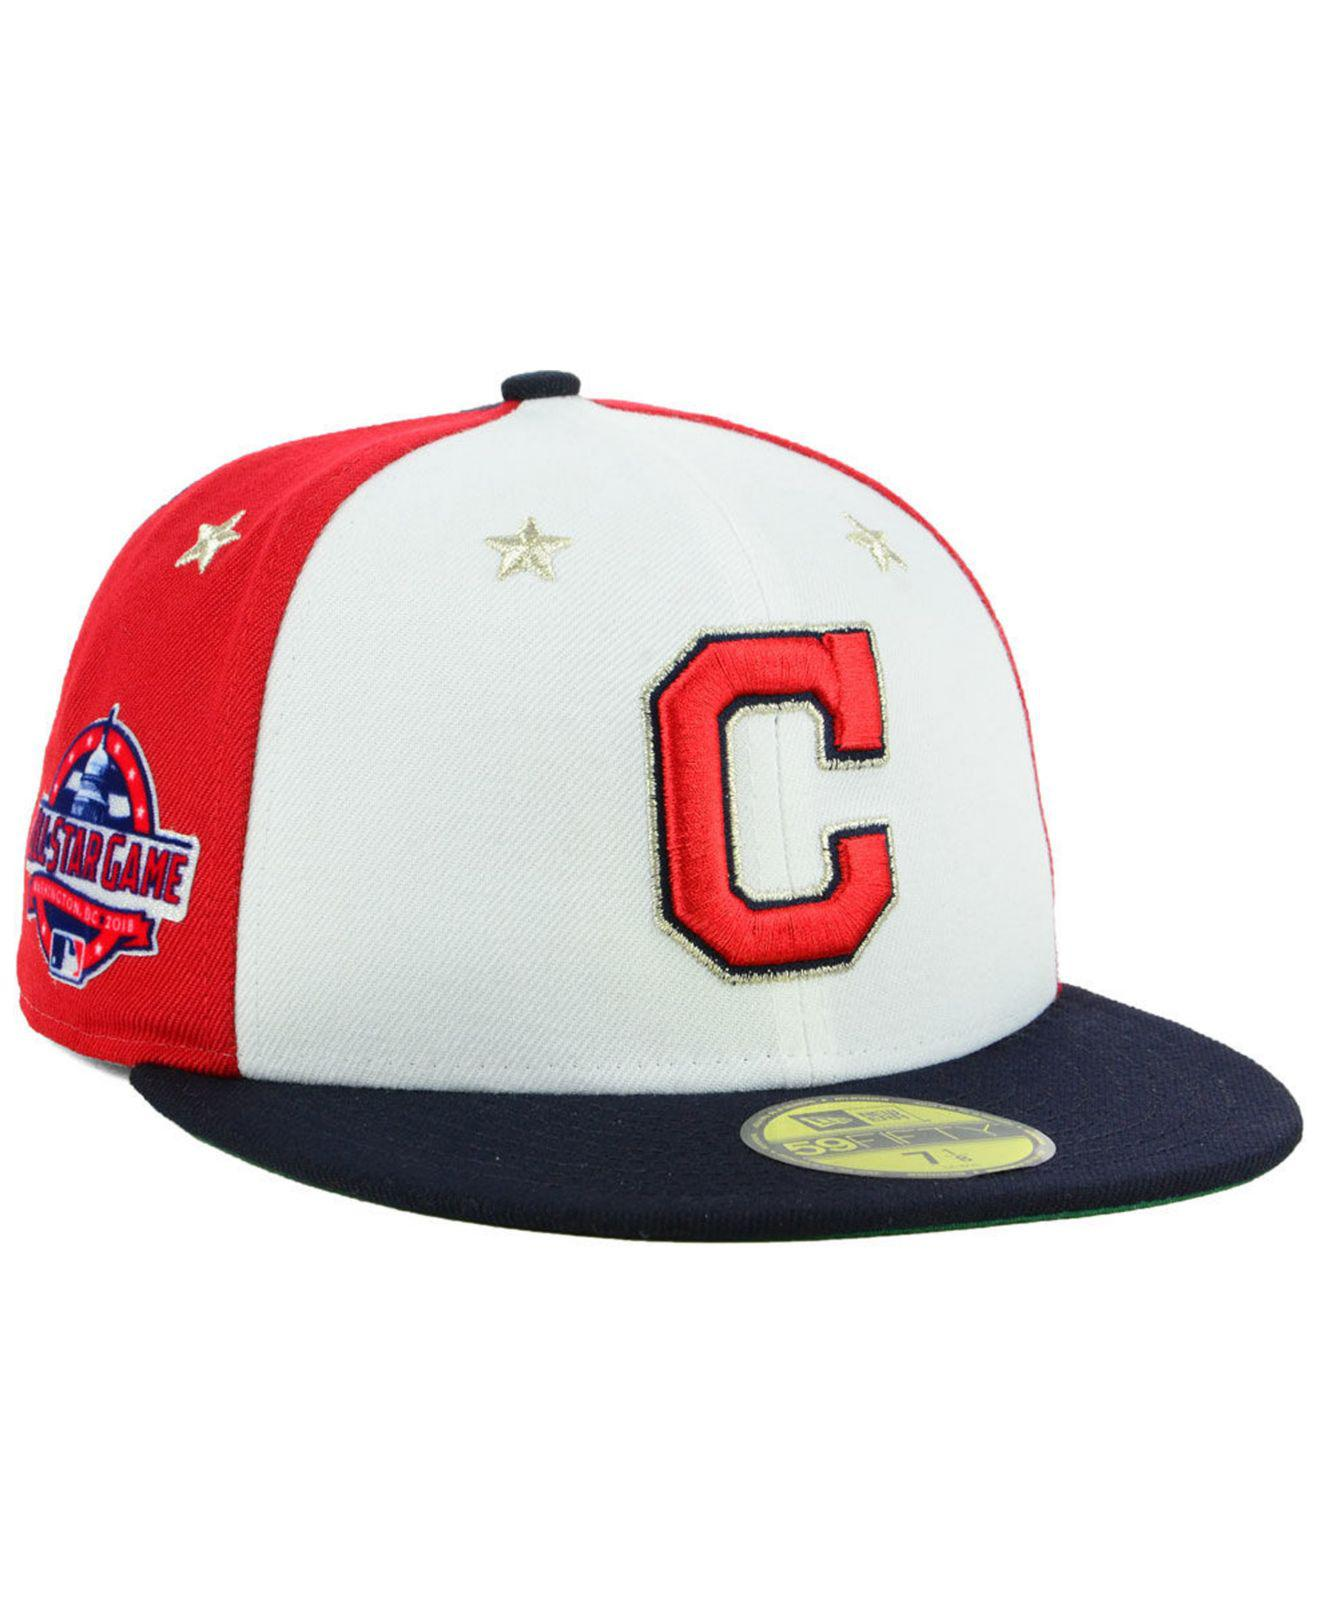 meet b0c5a 15586 KTZ. Men s Cleveland Indians All Star Game Patch 59fifty Fitted Cap